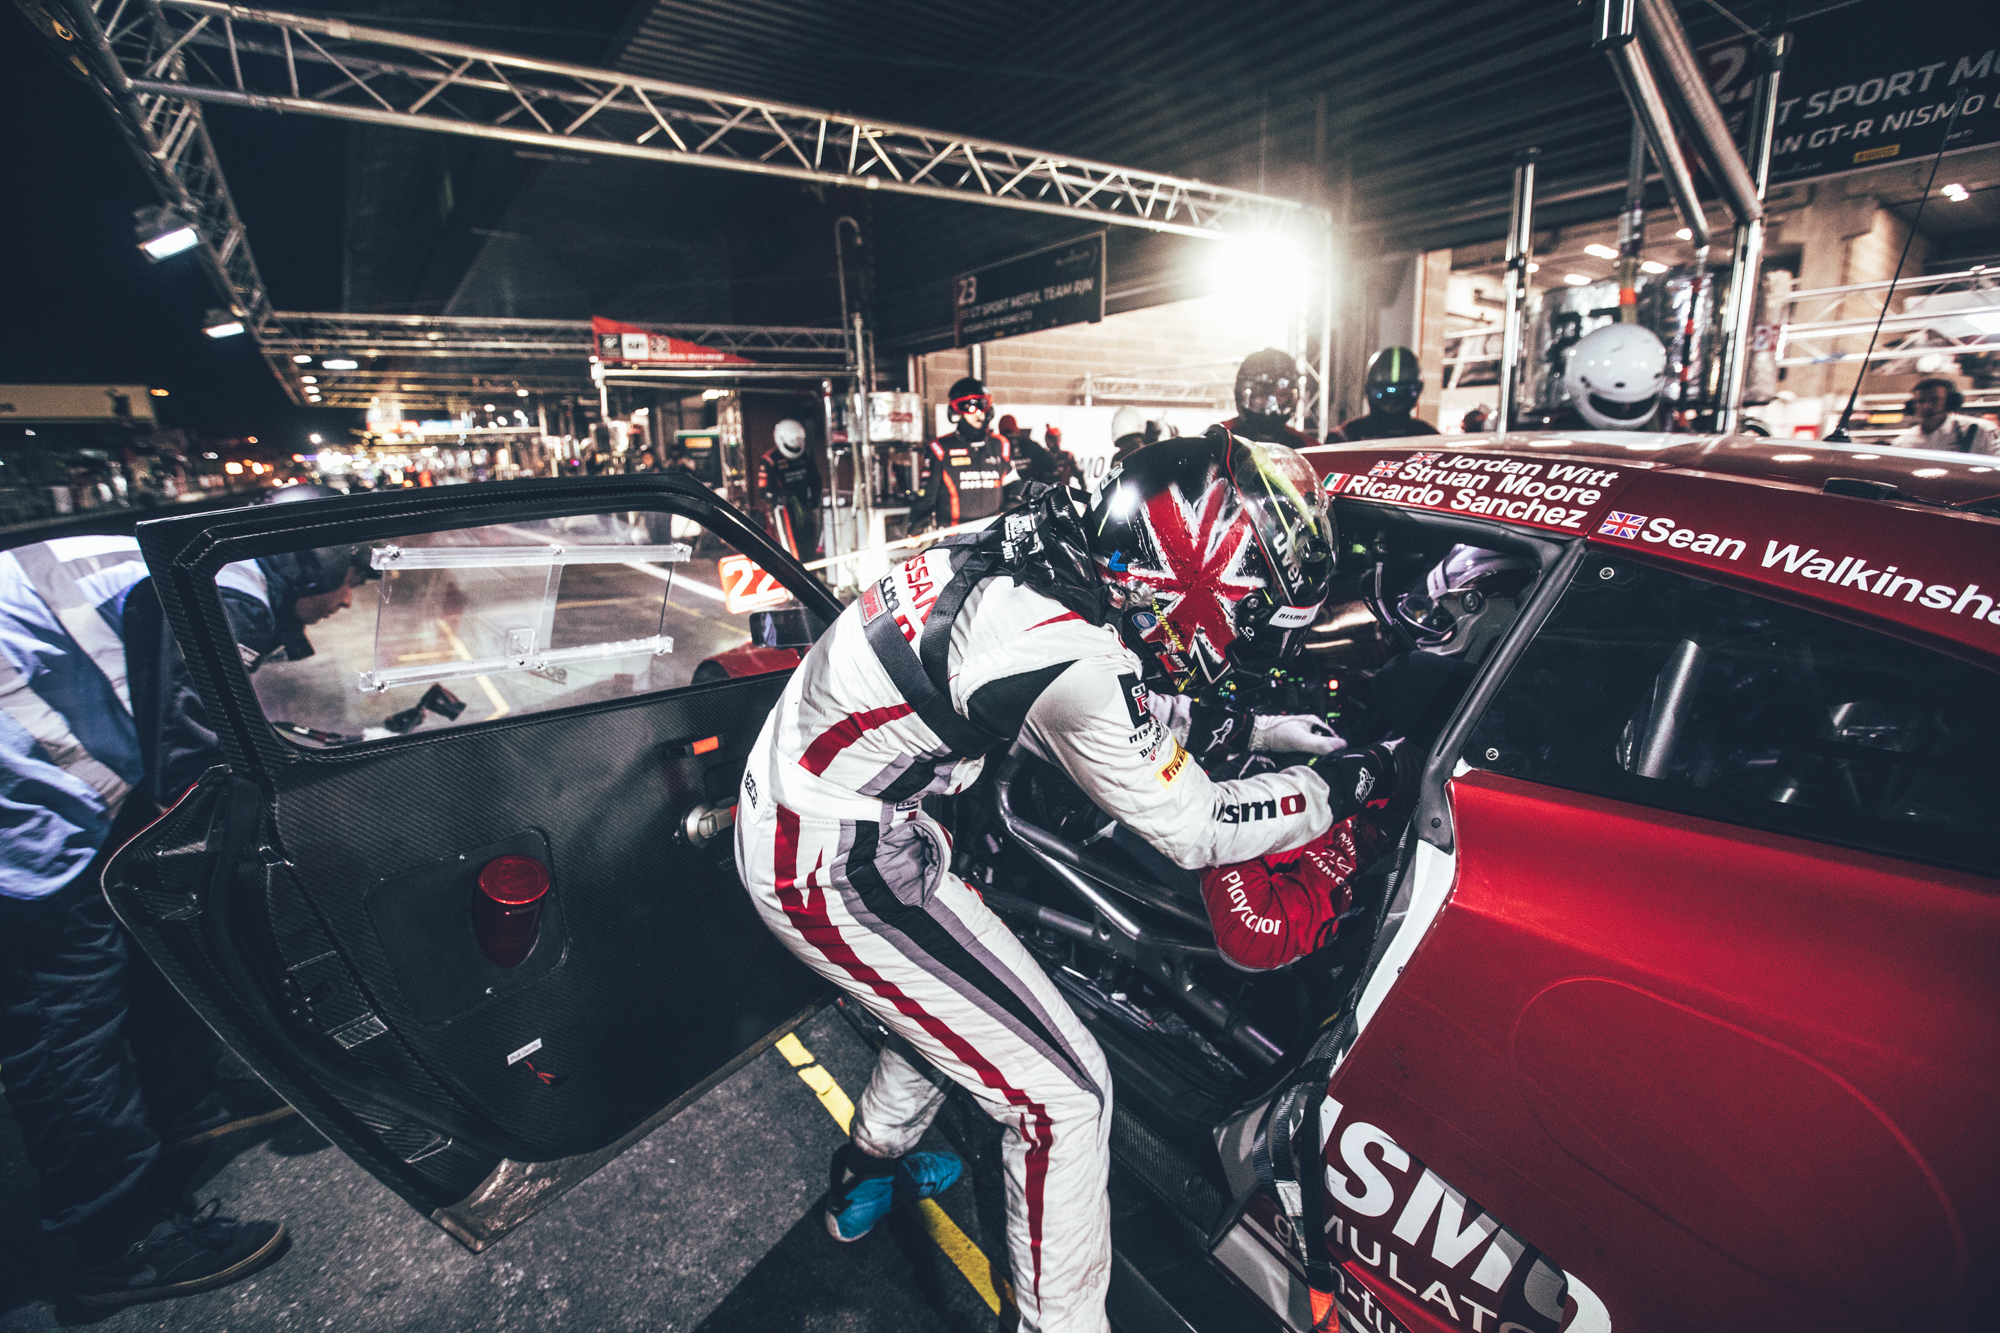 WHAT'S THE HARDEST PART OF AN ENDURANCE RACE?